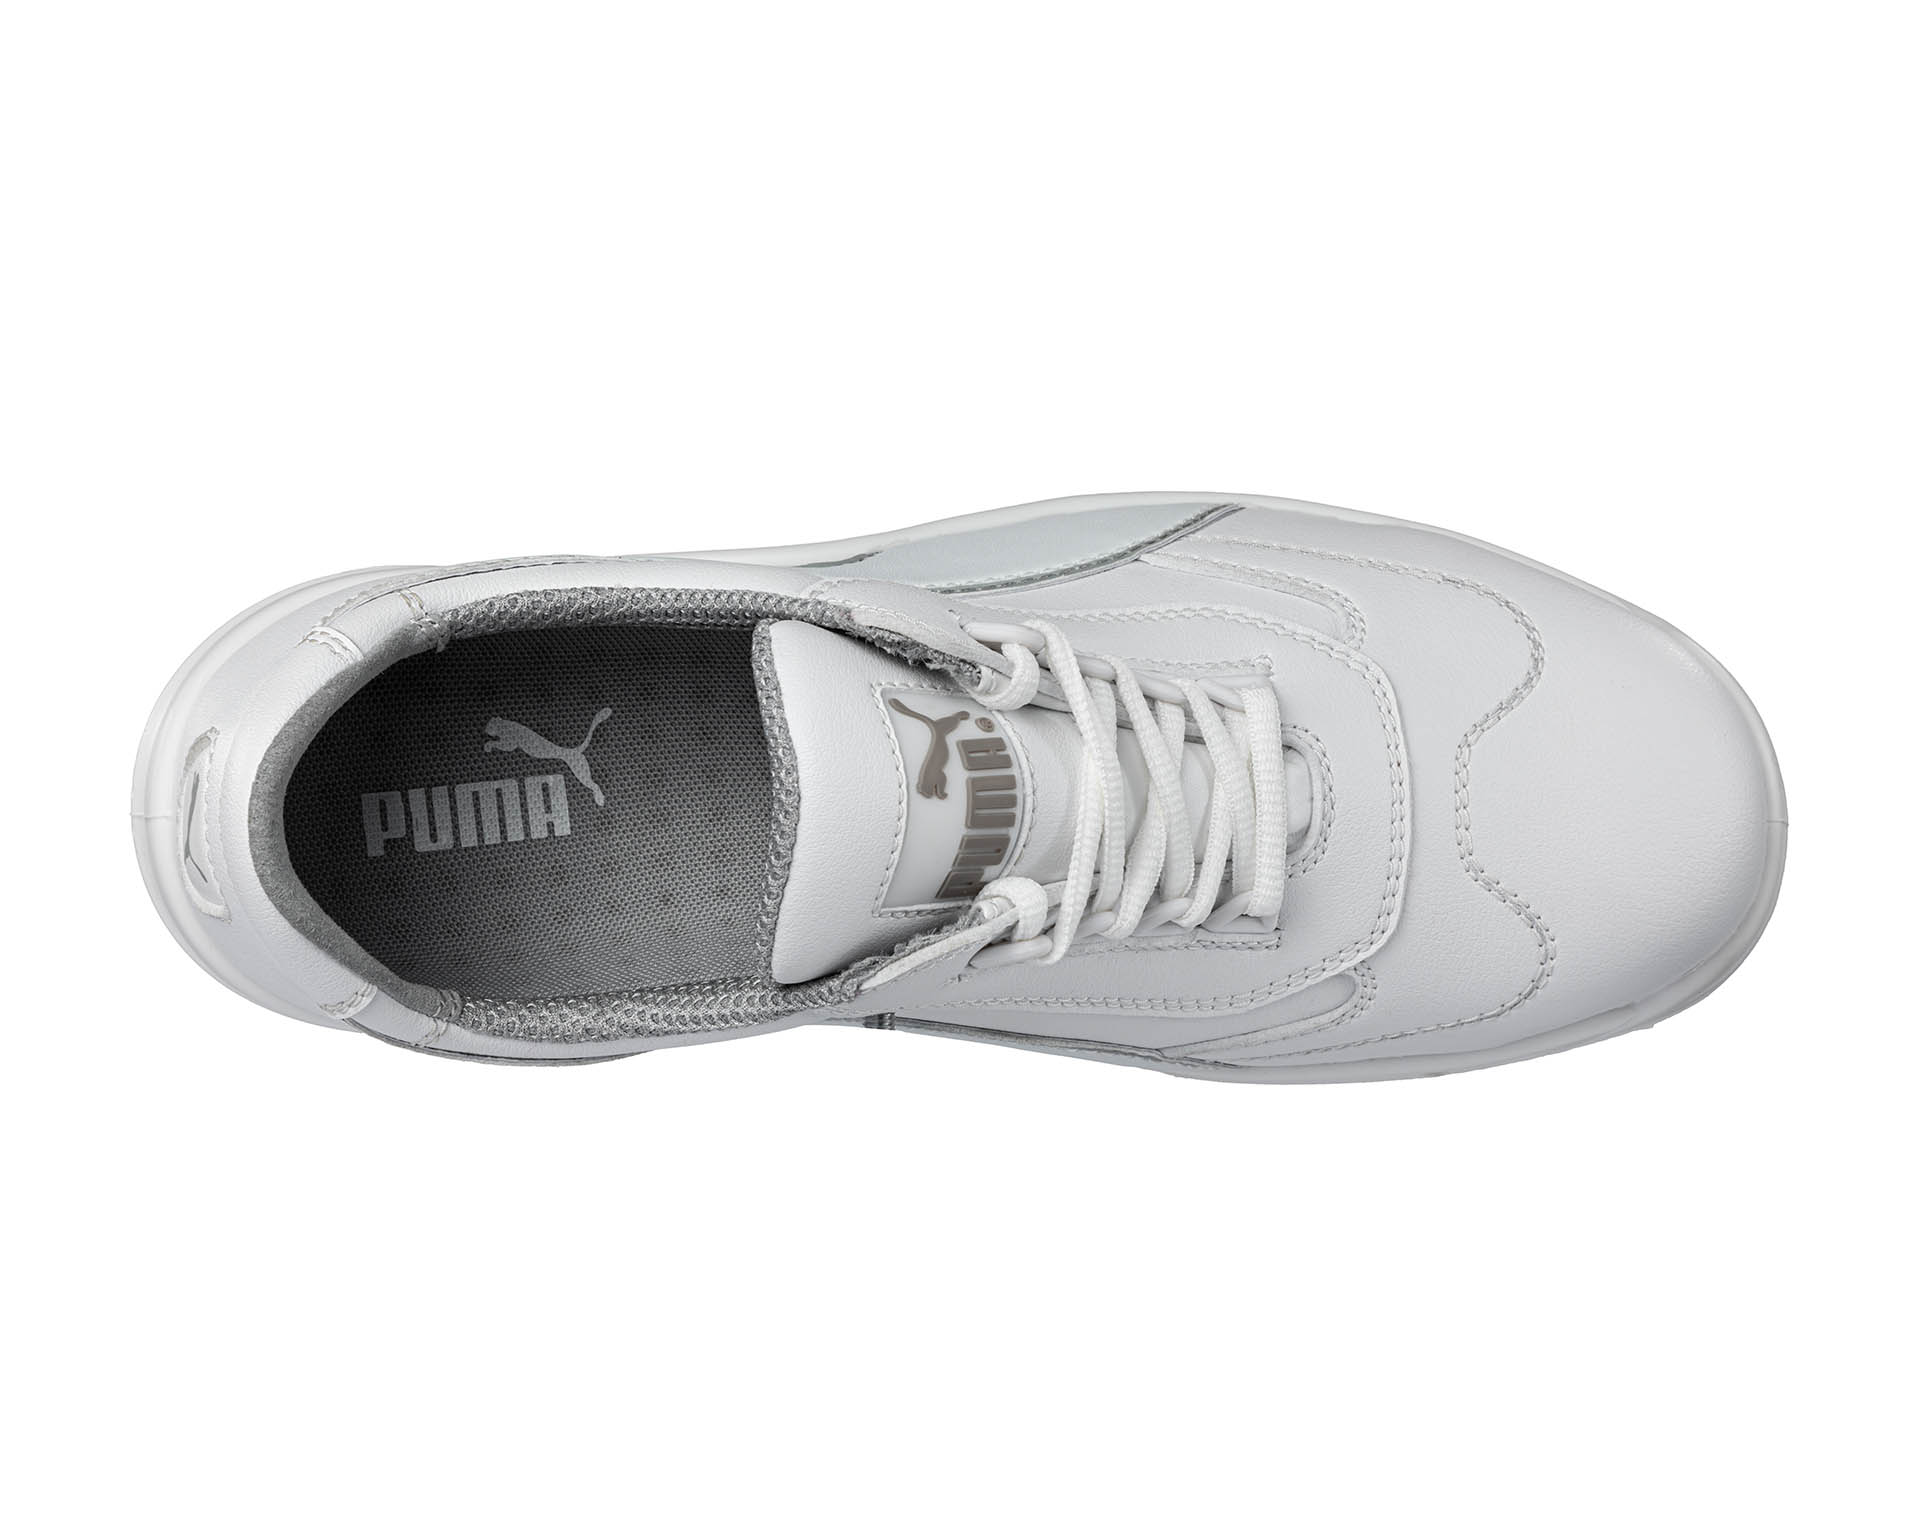 640622 Clarity Low S2 SRC | Puma Safety